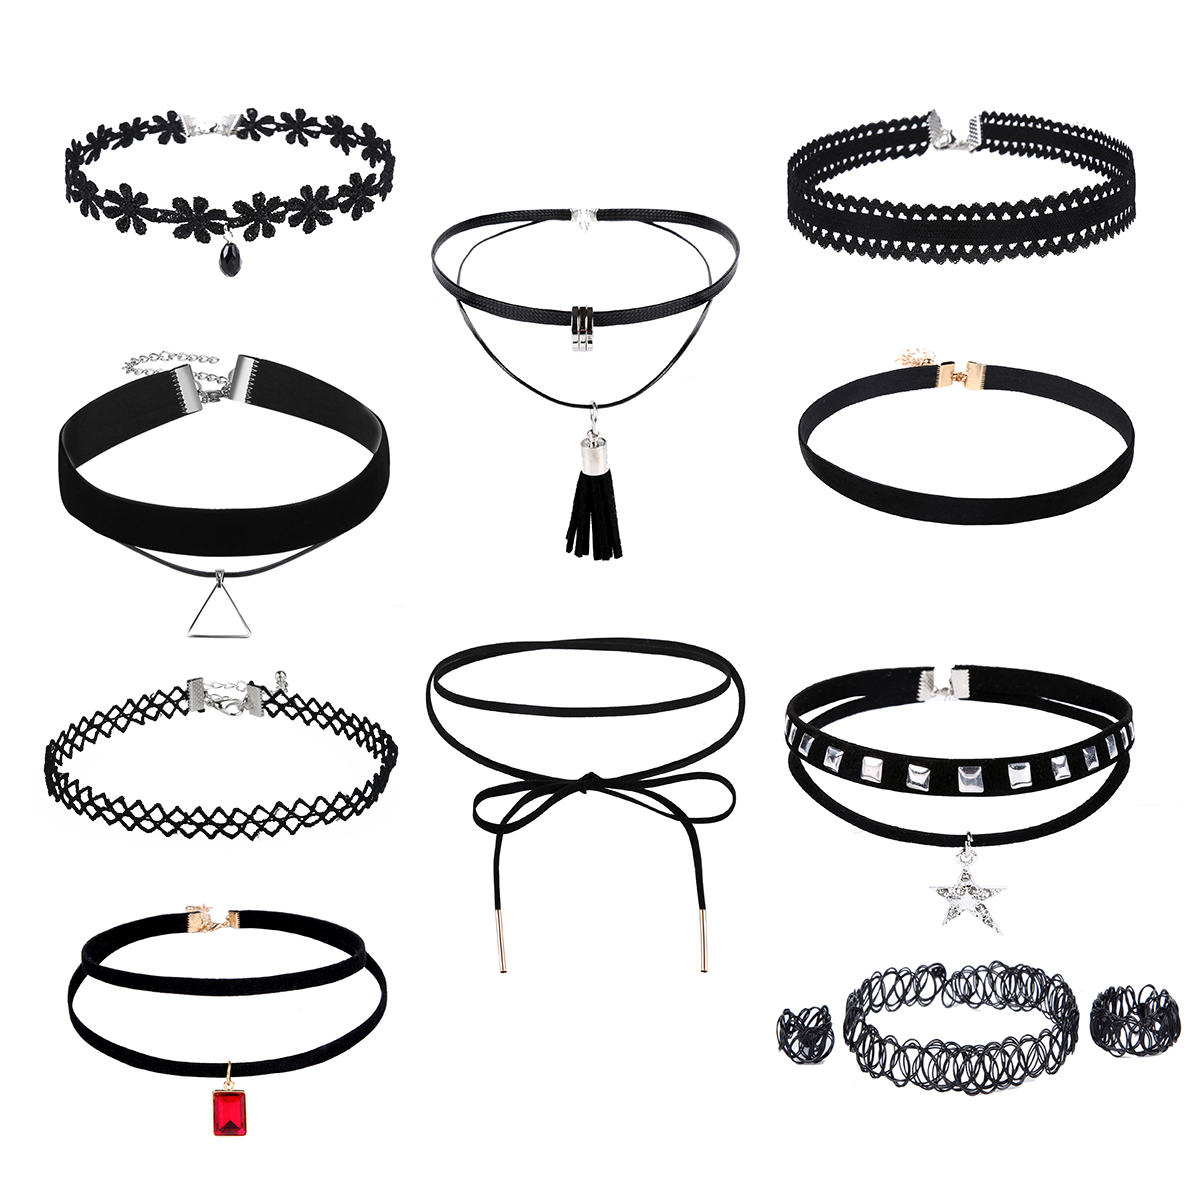 BESTOMZ Black Choker Necklace Lace Choker Tattoo Necklace for Women Girl Length Adjustable Collar Necklace, 10pcs Pack